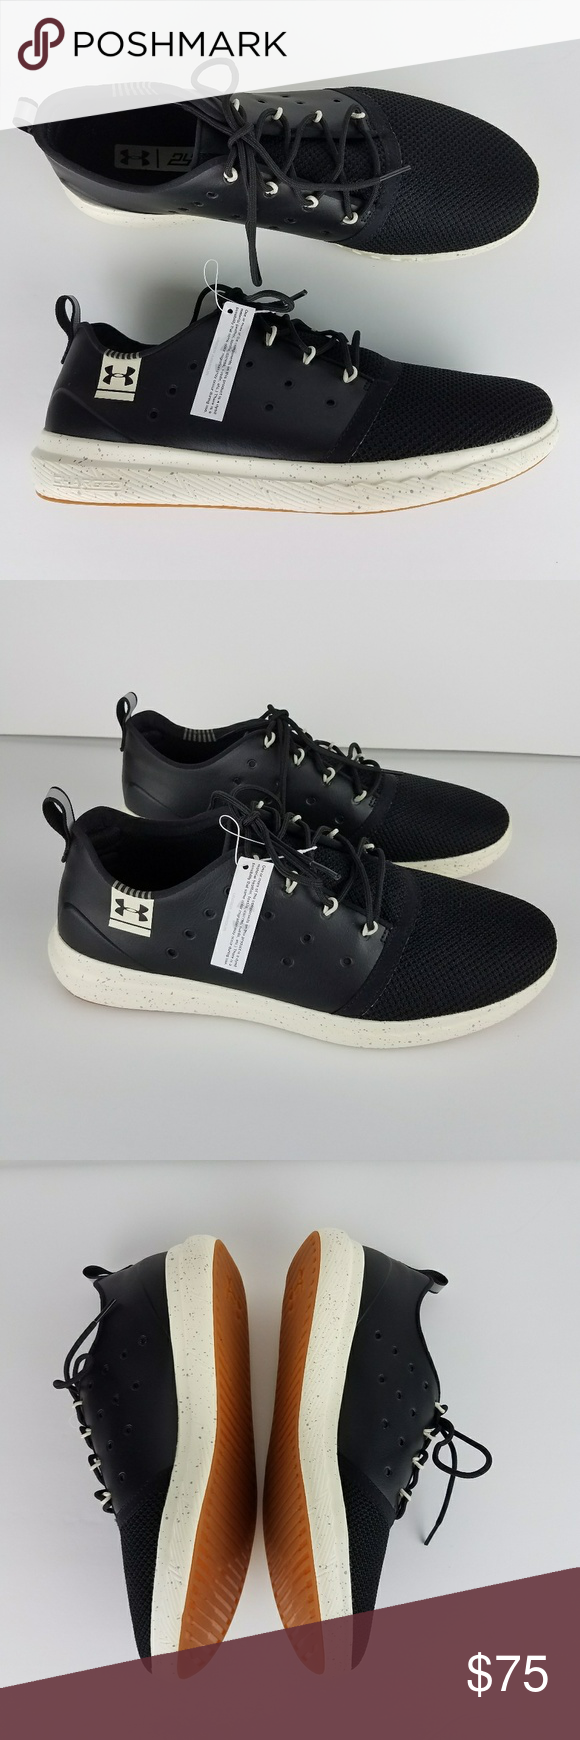 online store 88db0 0c11c UNDER ARMOUR 24 7 UA Low Leather Running Shoes 11 NWT in 2018   My Posh  Picks   Pinterest